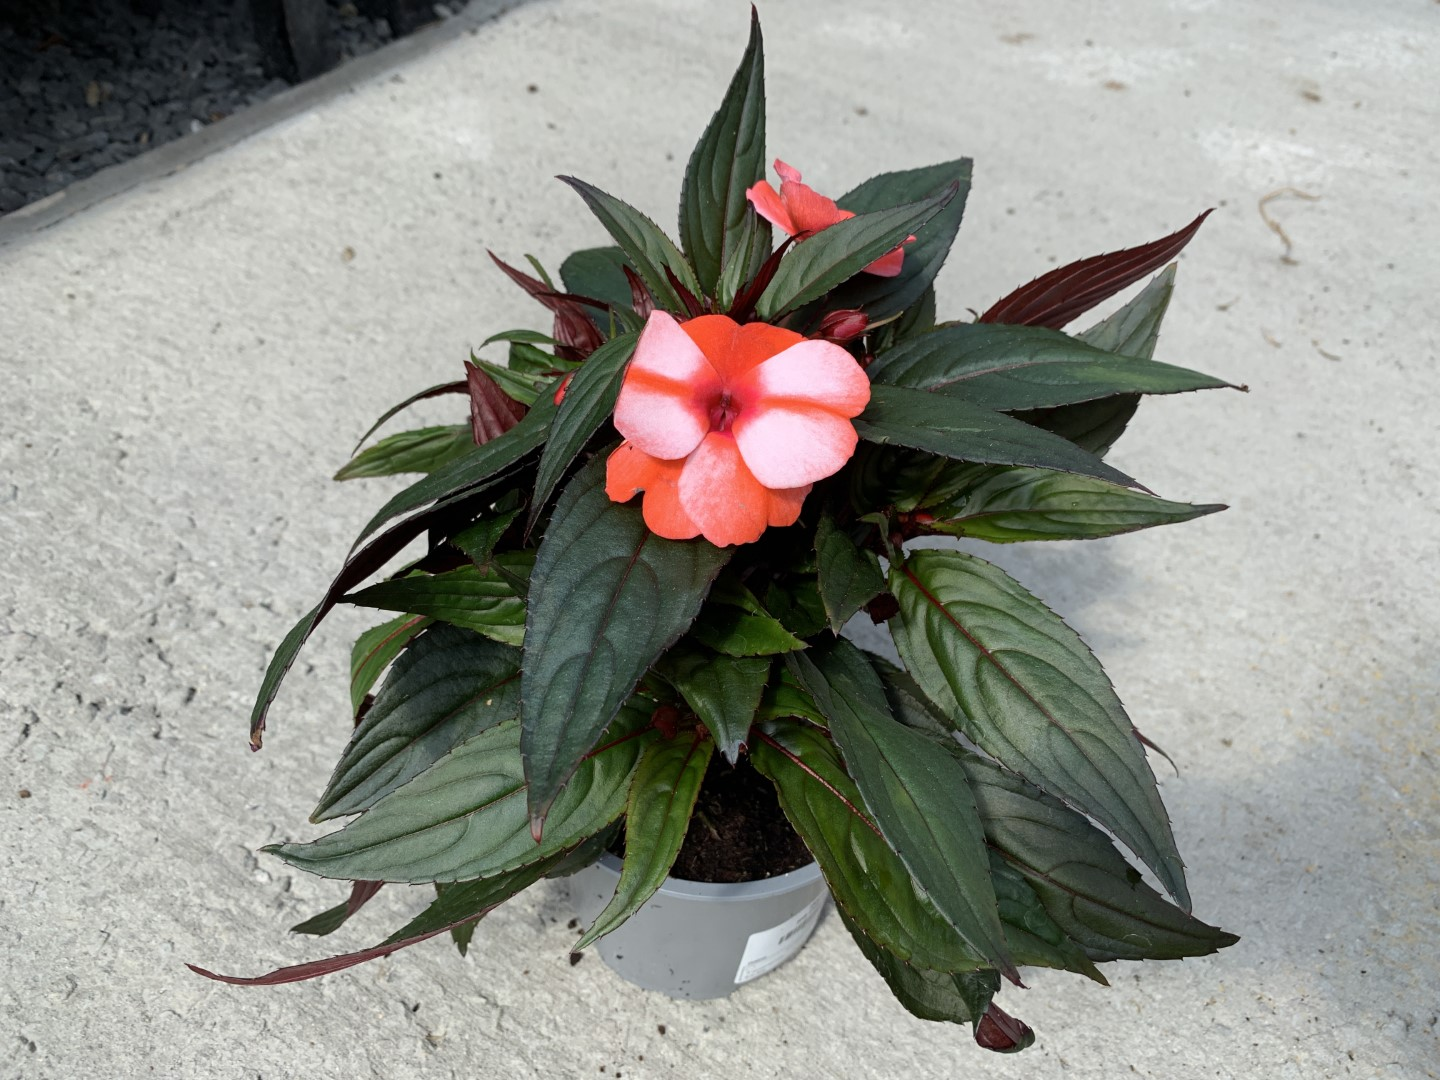 Impatiens New Guinea Sel - 1ltr Pot